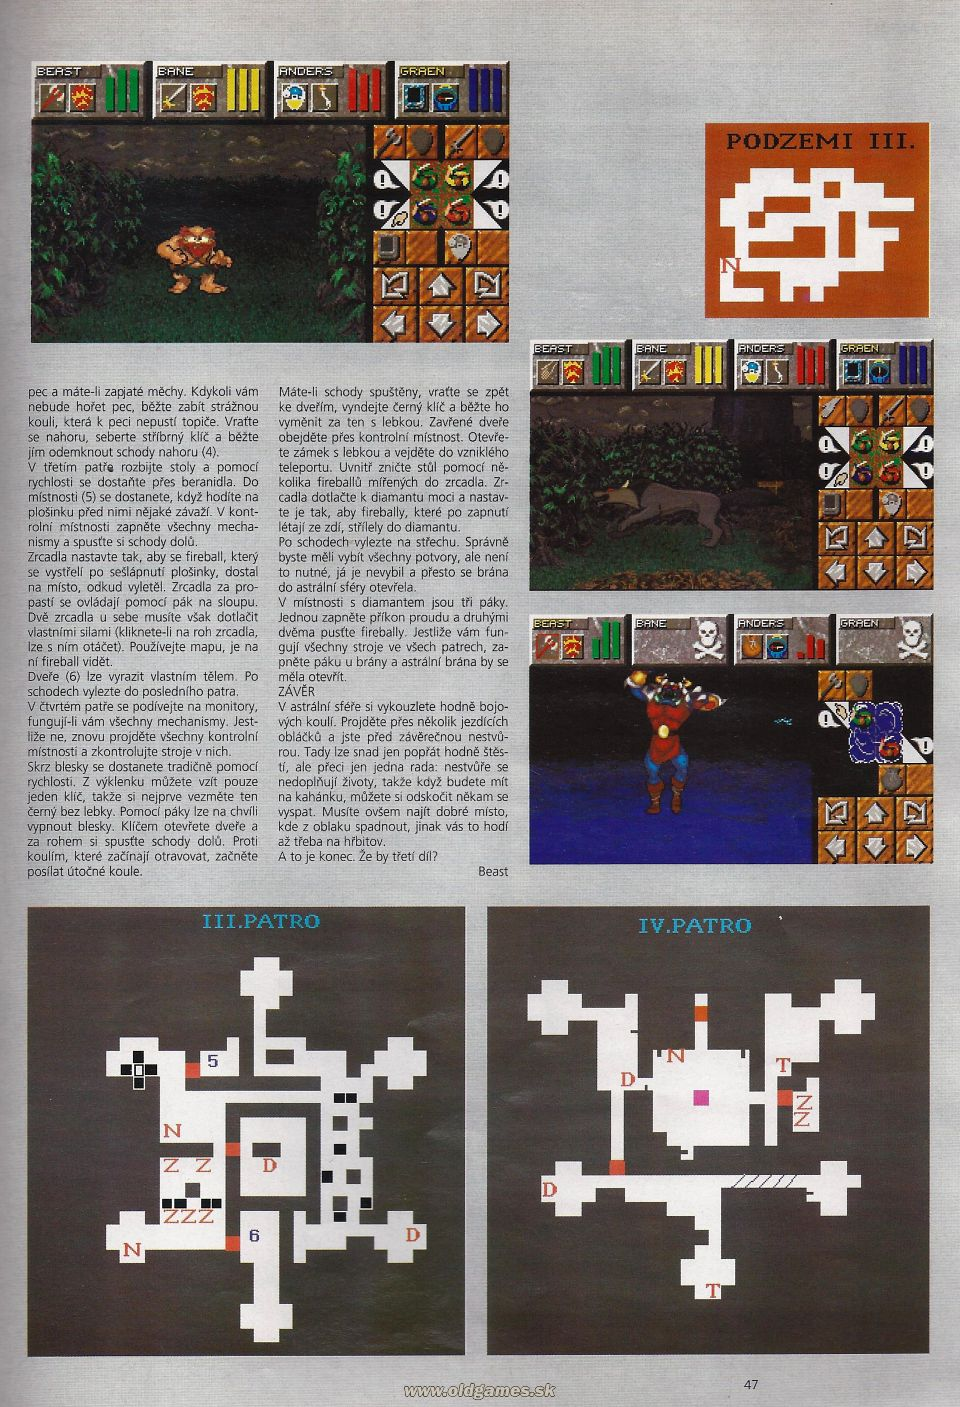 Dungeon Master II Hints published in Czech magazine 'Level', Issue #8 September 1995, Page 47